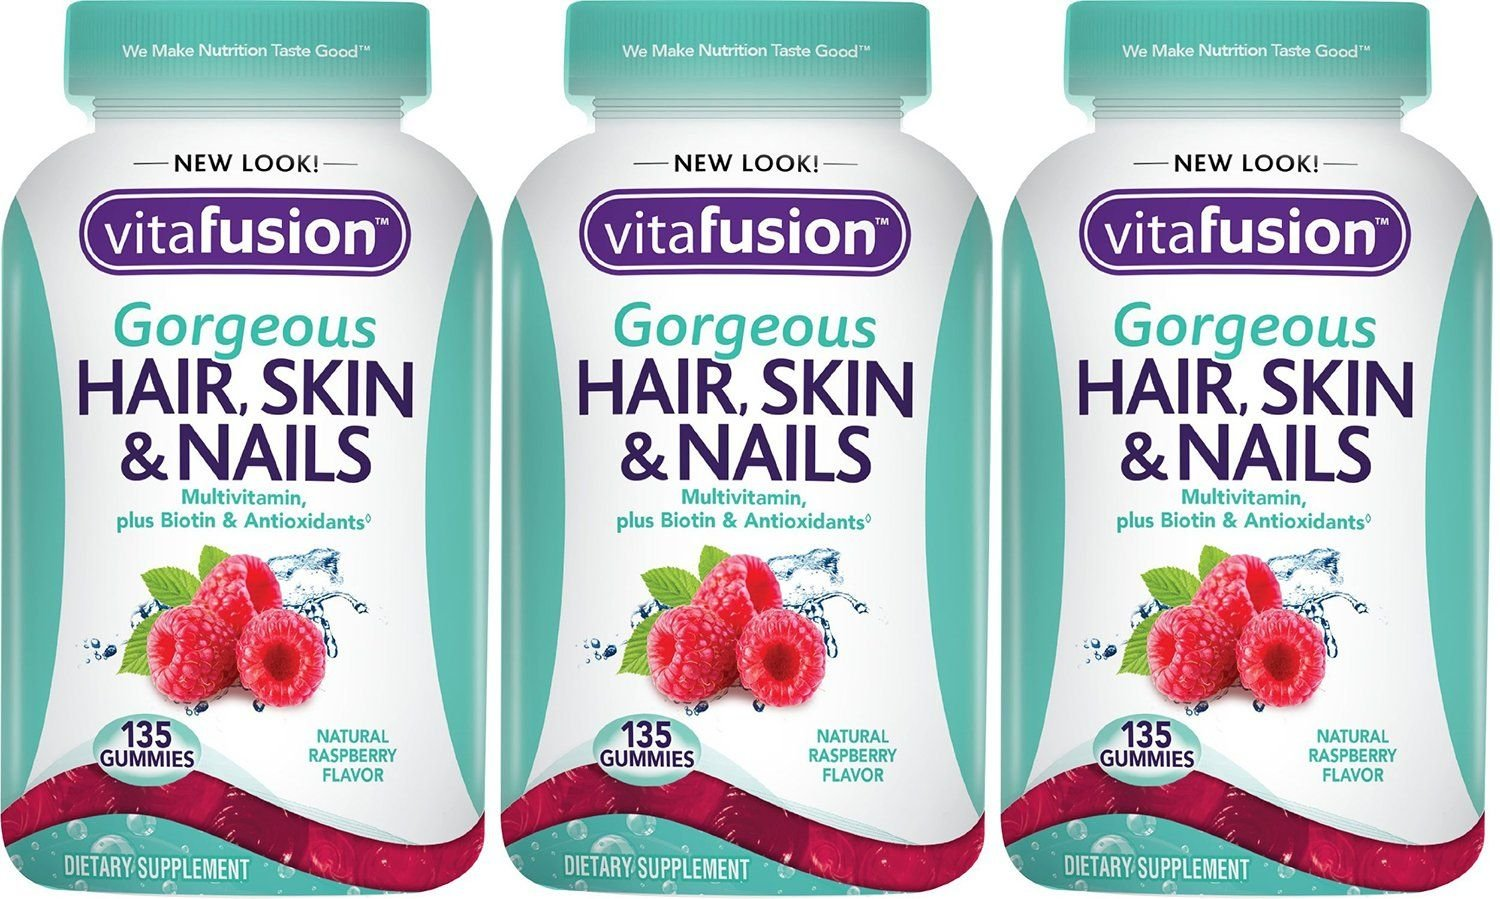 Vitafusion Gorgeous Hair, Skin & Nails gSQjY Multivitamin, 135 Count (Pack of 3) QIwew